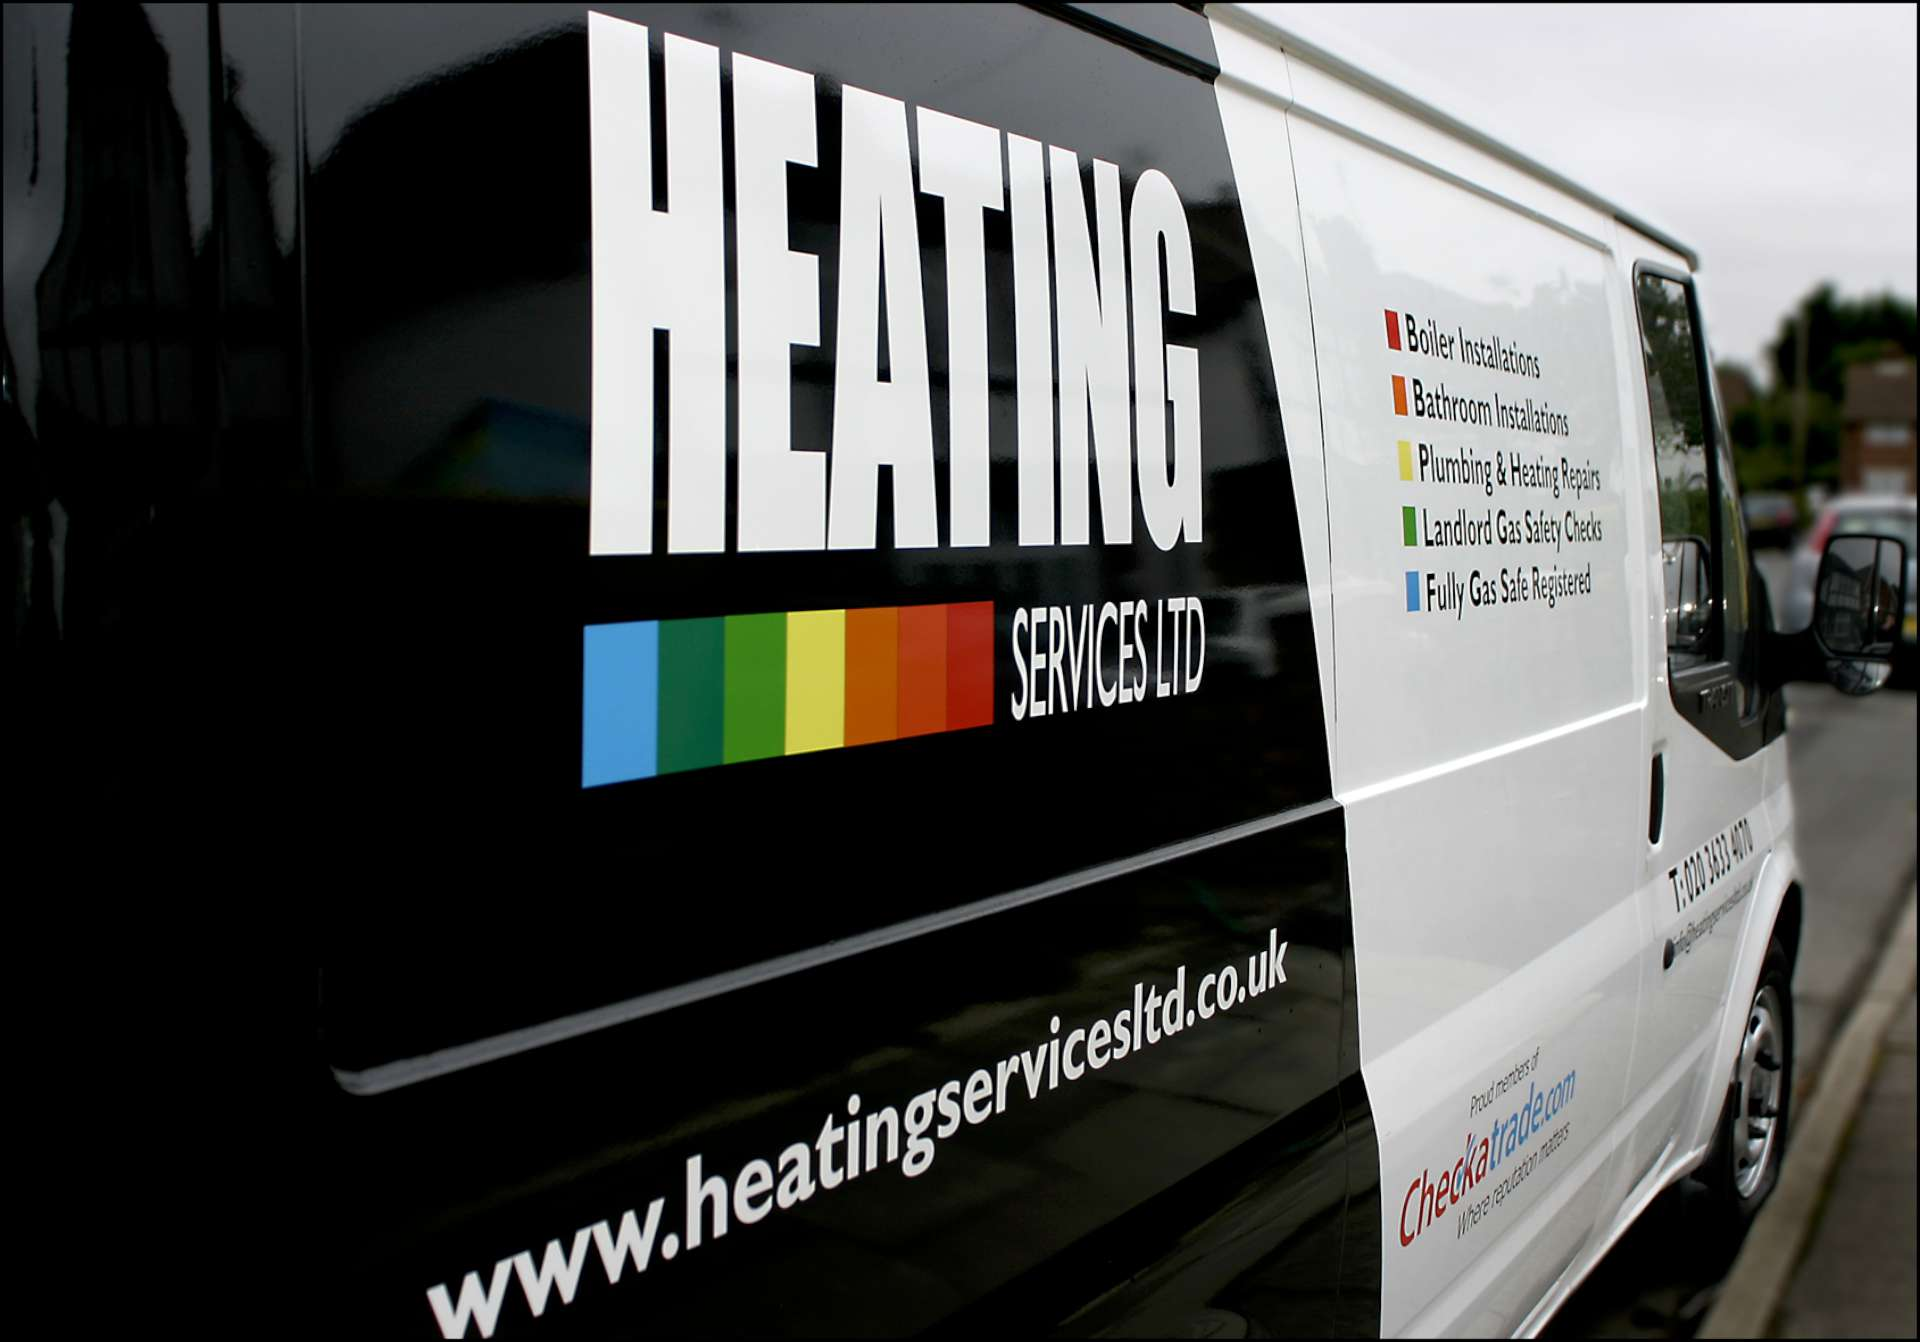 Plumbers_ Boiler Installation_ Service and Repairs and Bathroom Design and Installation by Heating Services Ltd in Chislehurst (6)